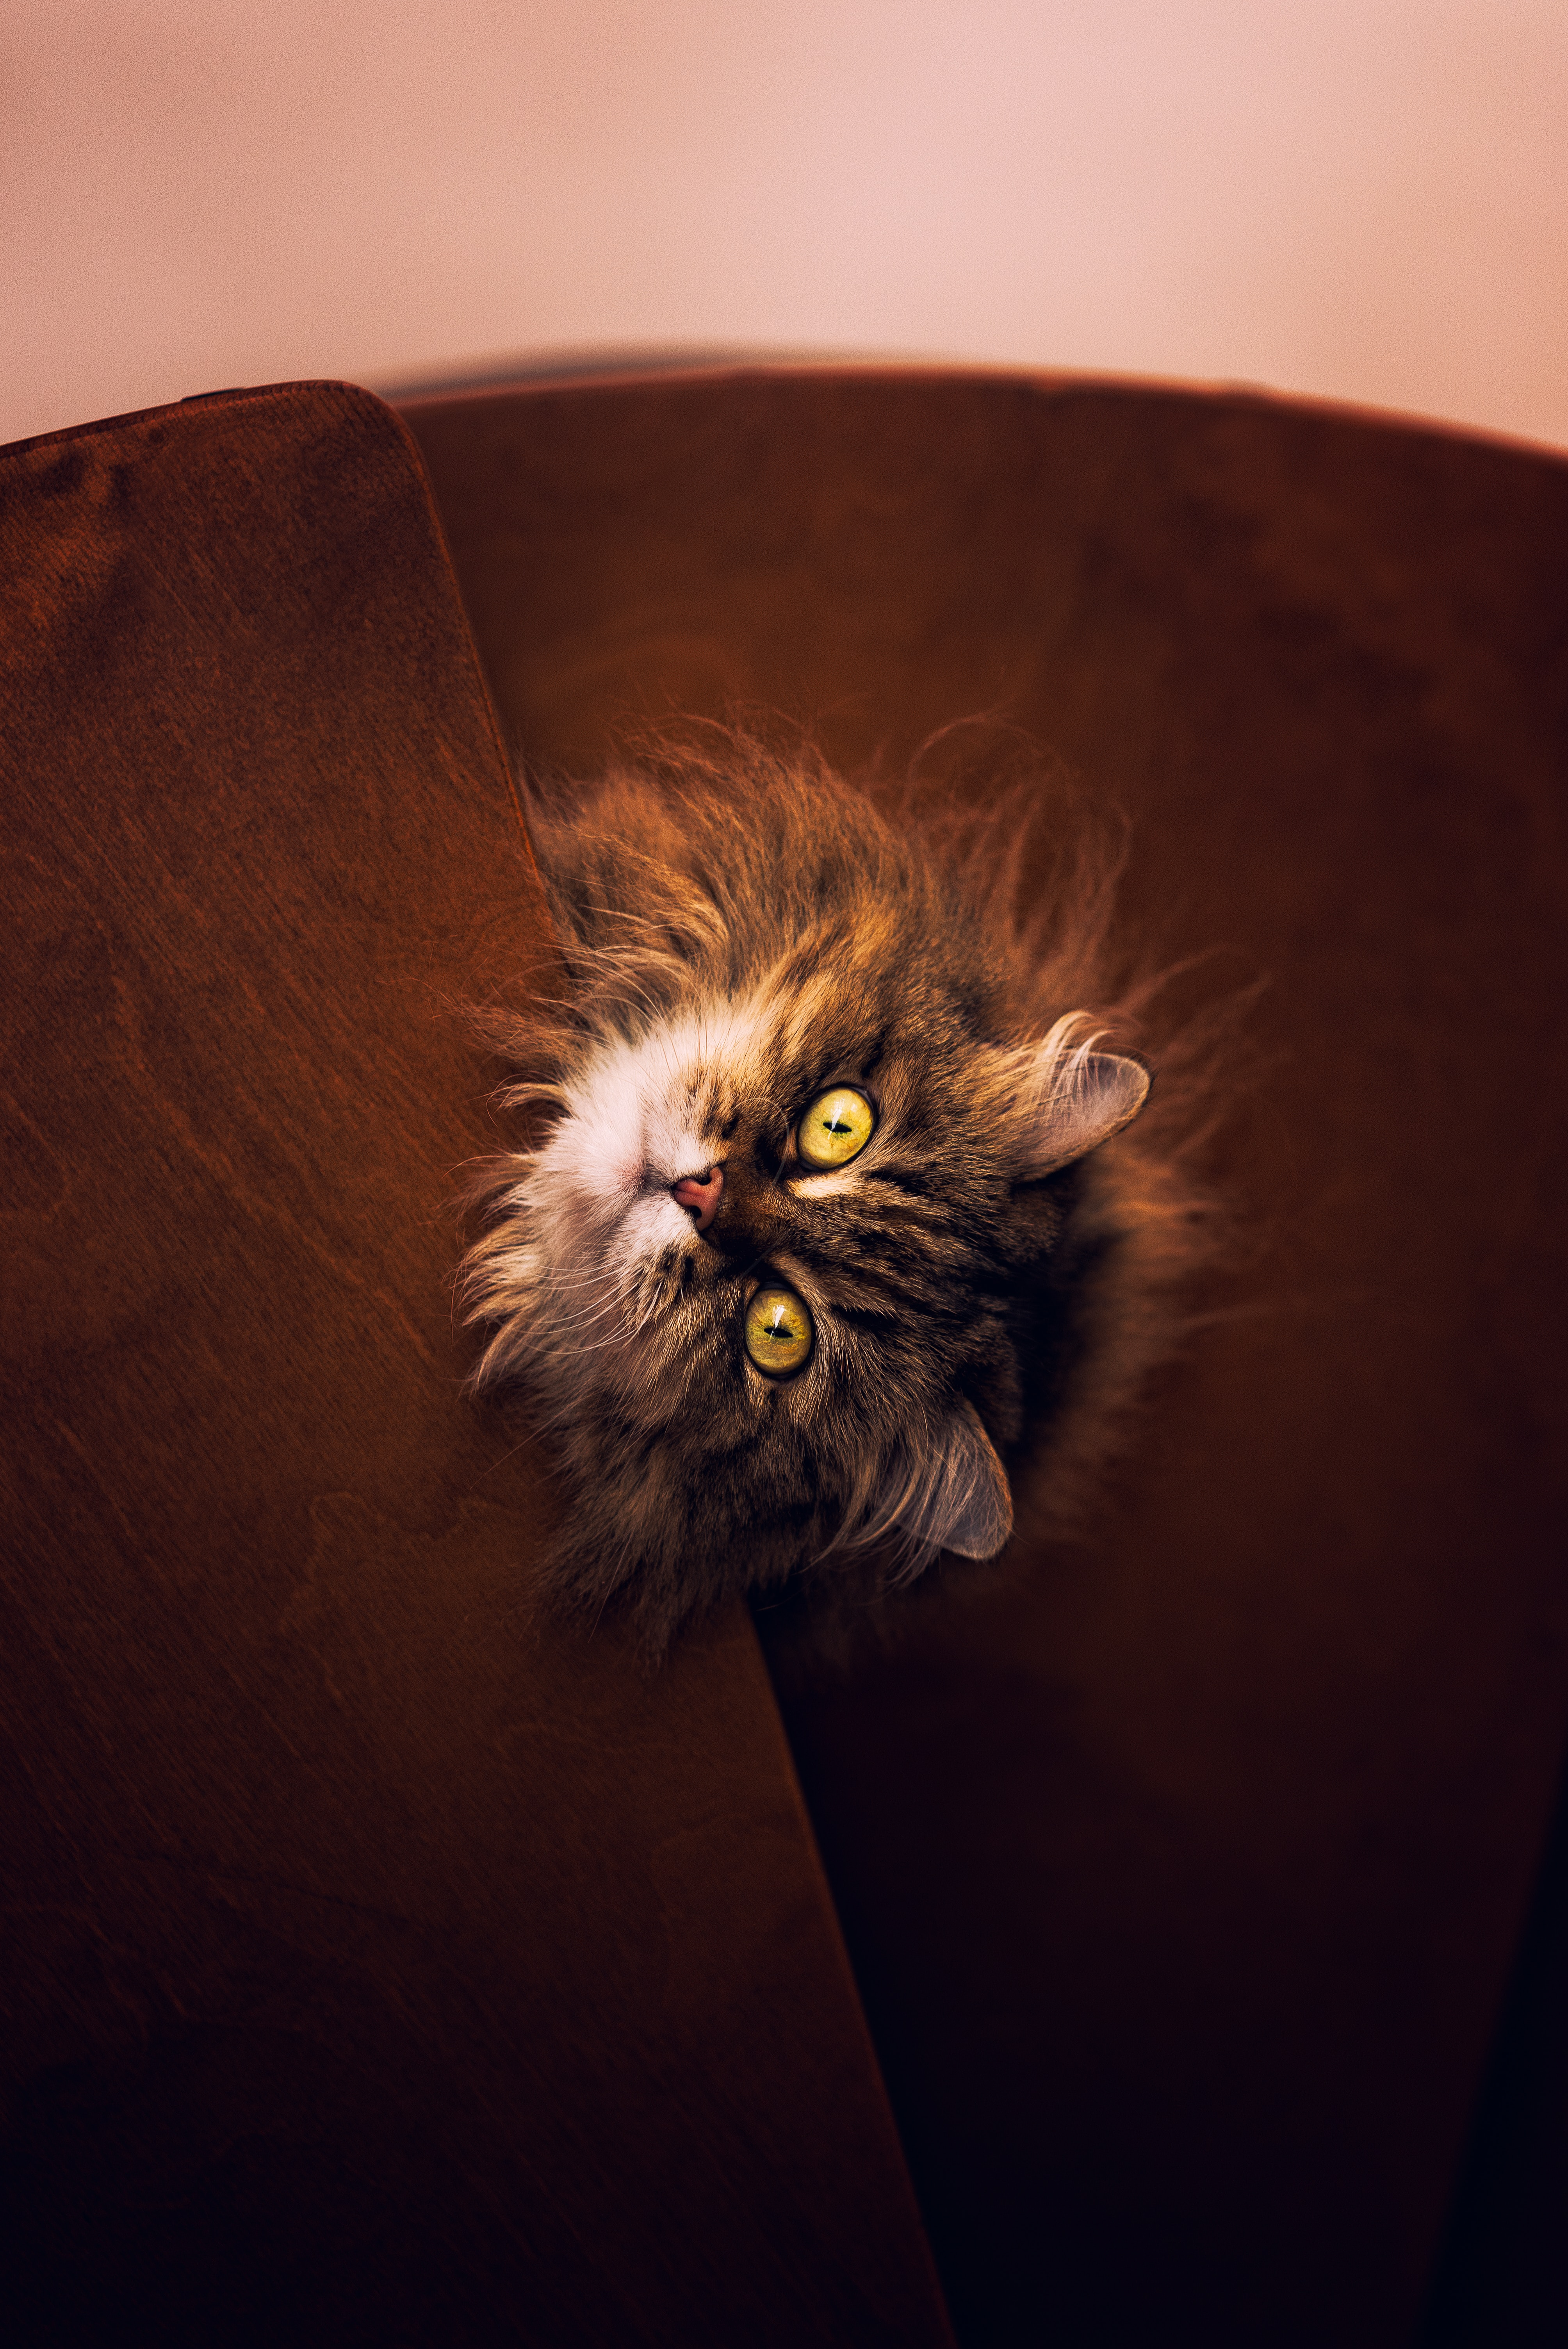 64390 download wallpaper Animals, Cat, Grey, Fluffy, Pet screensavers and pictures for free